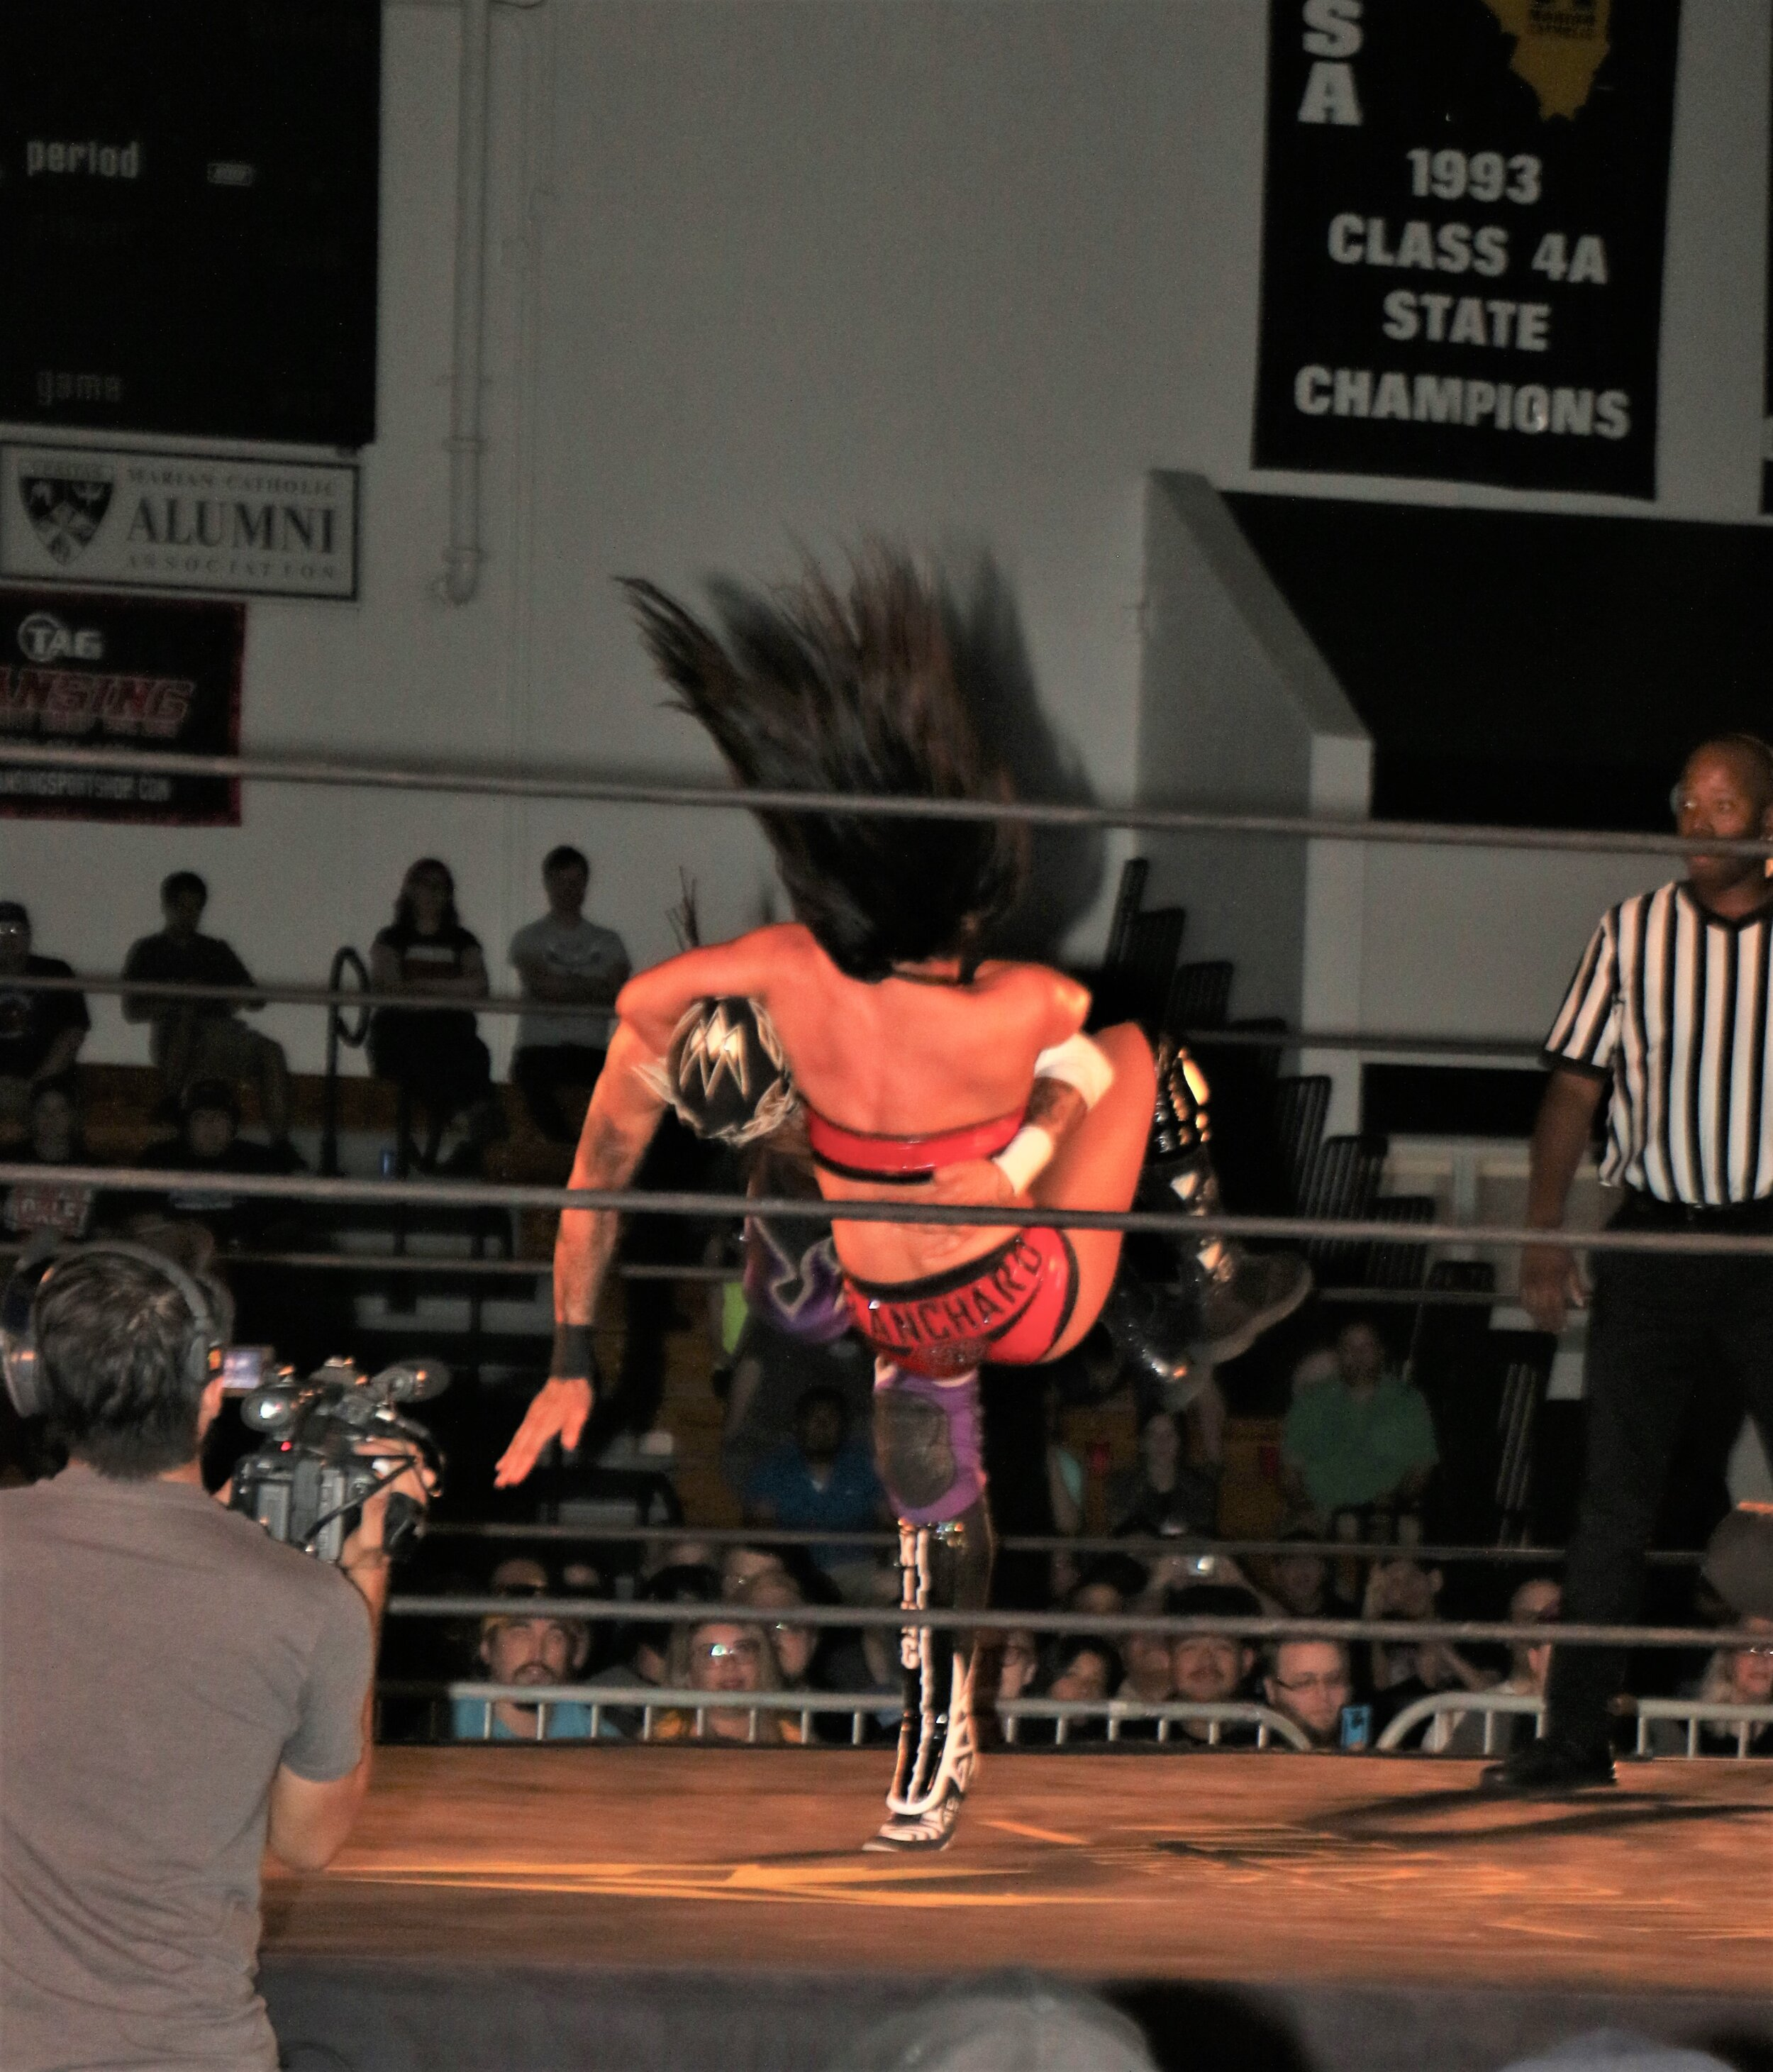 Tessa Blanchard delivers a DDT to Fenix during the tag team match.